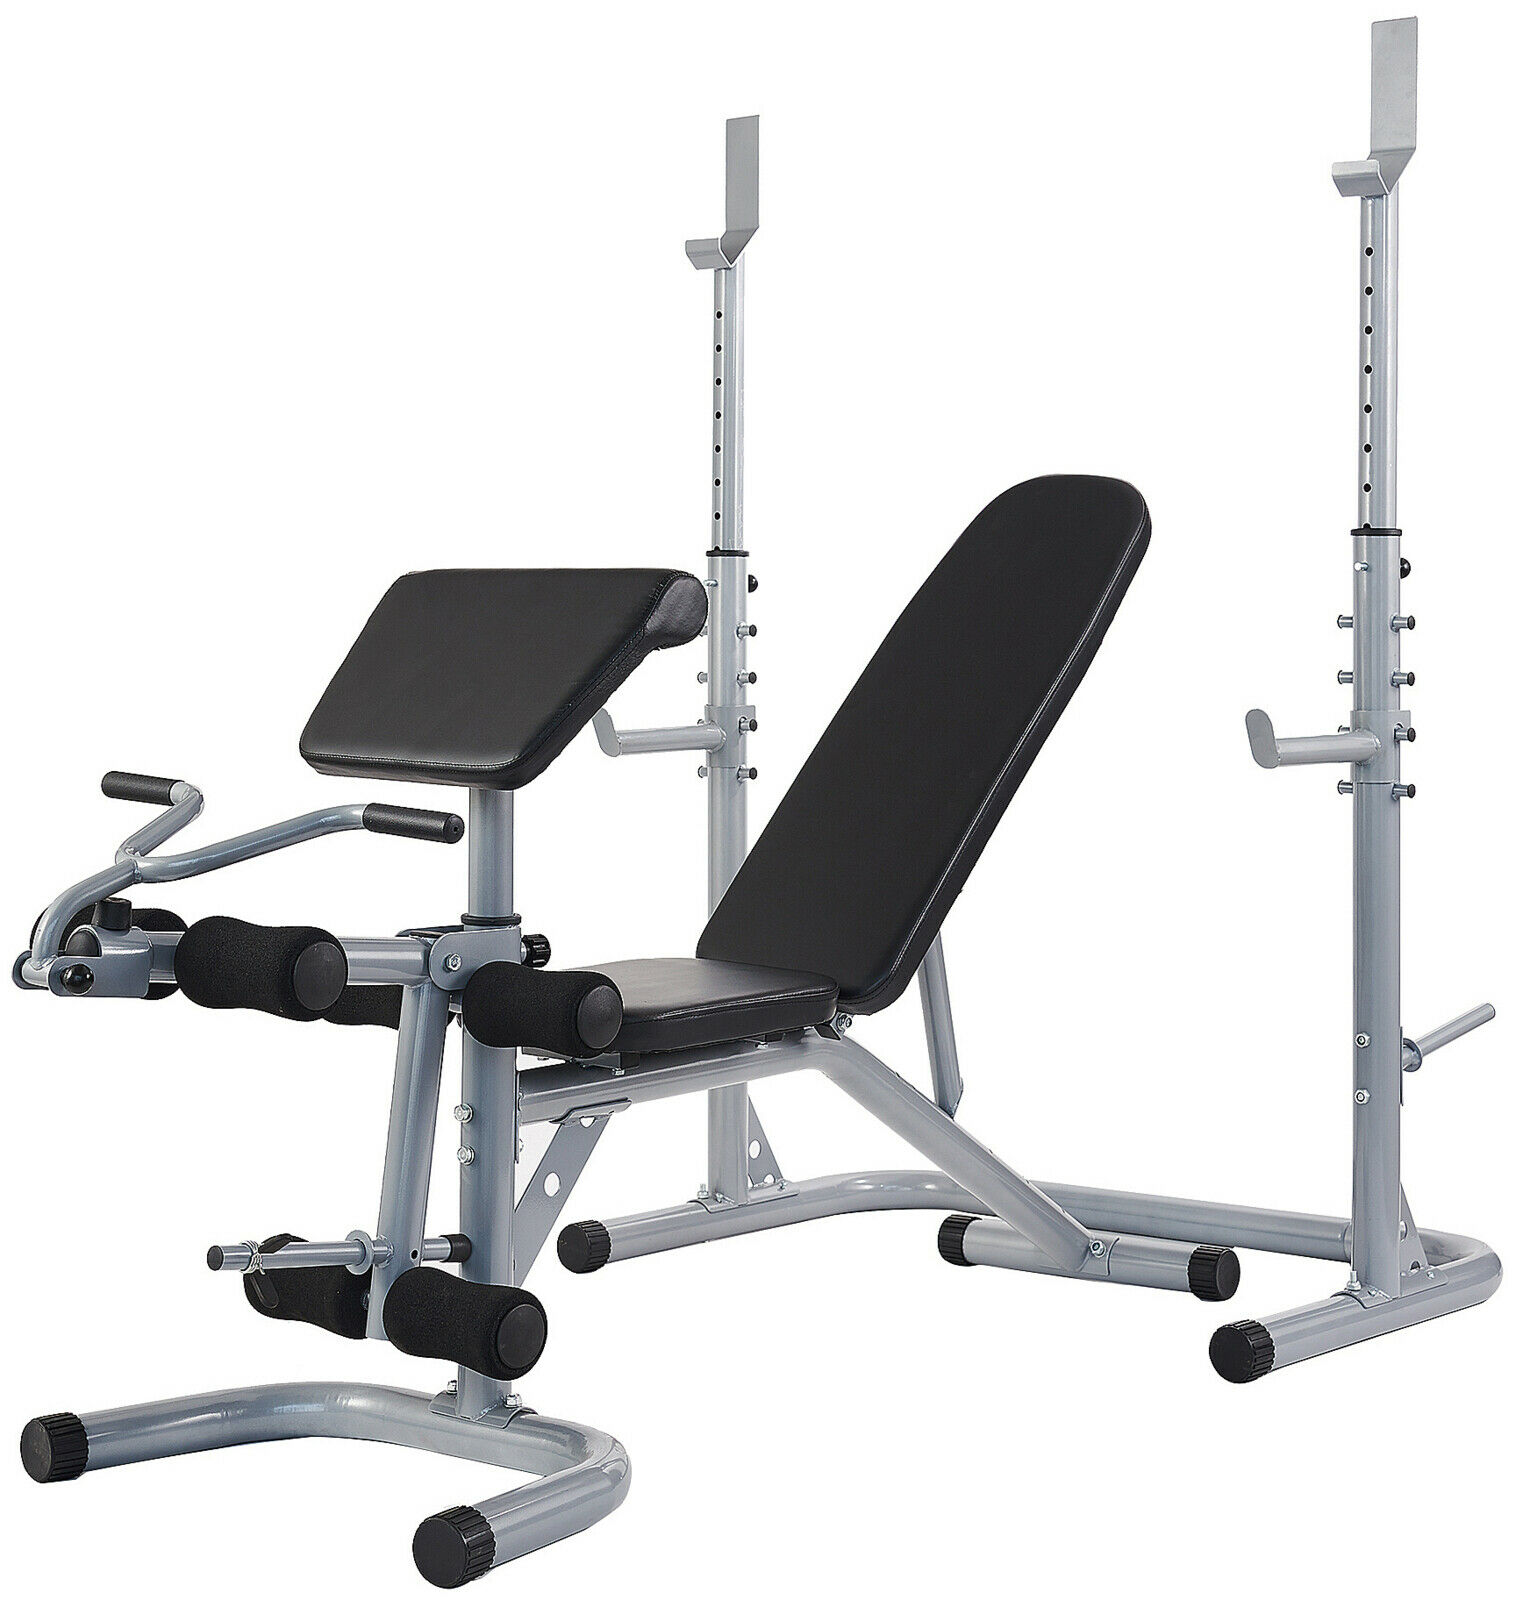 Multifunctional Workout Station Adjustable Olympic Workout B